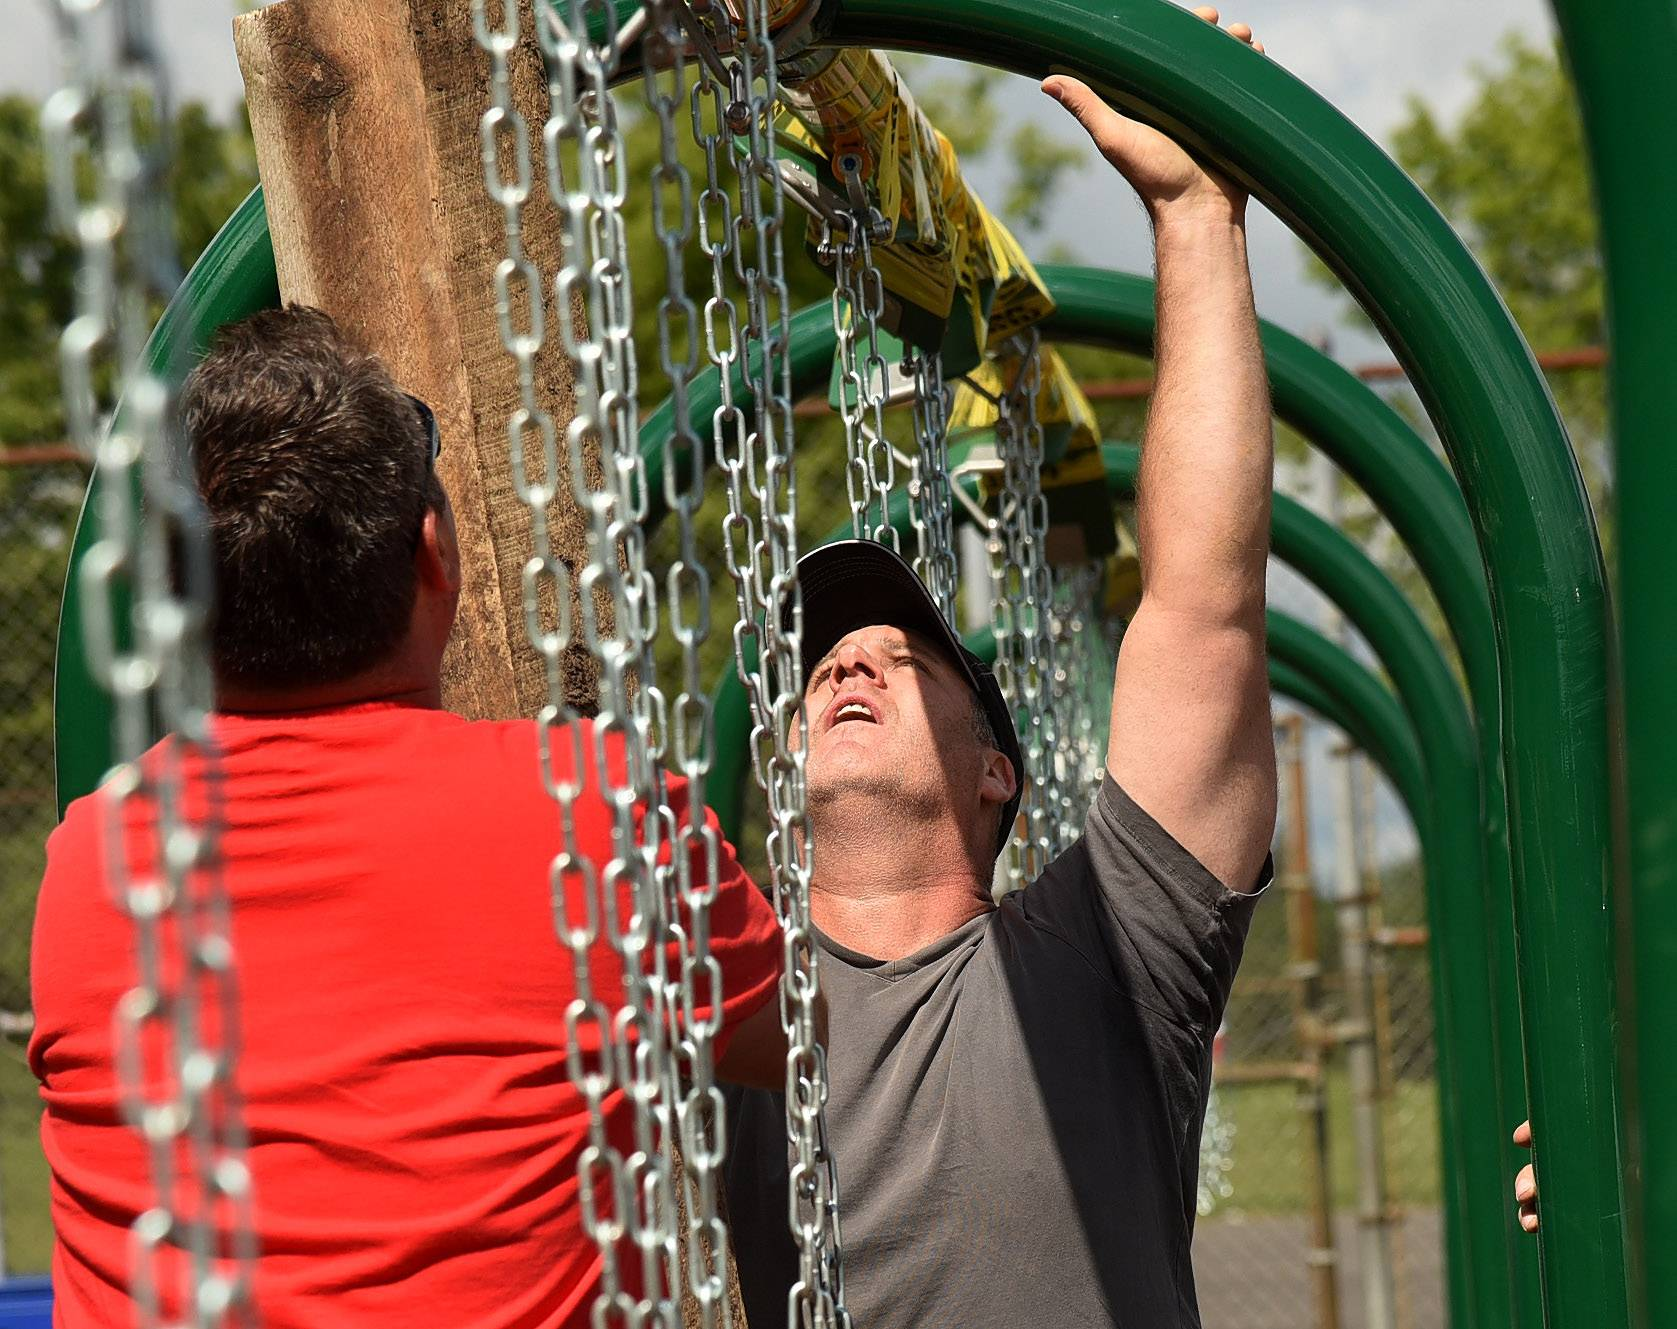 Brian McMahon and Drew Rieder work on leveling a swing set during a volunteer project to build a new playground at Butterfield School in Libertyville Saturday.